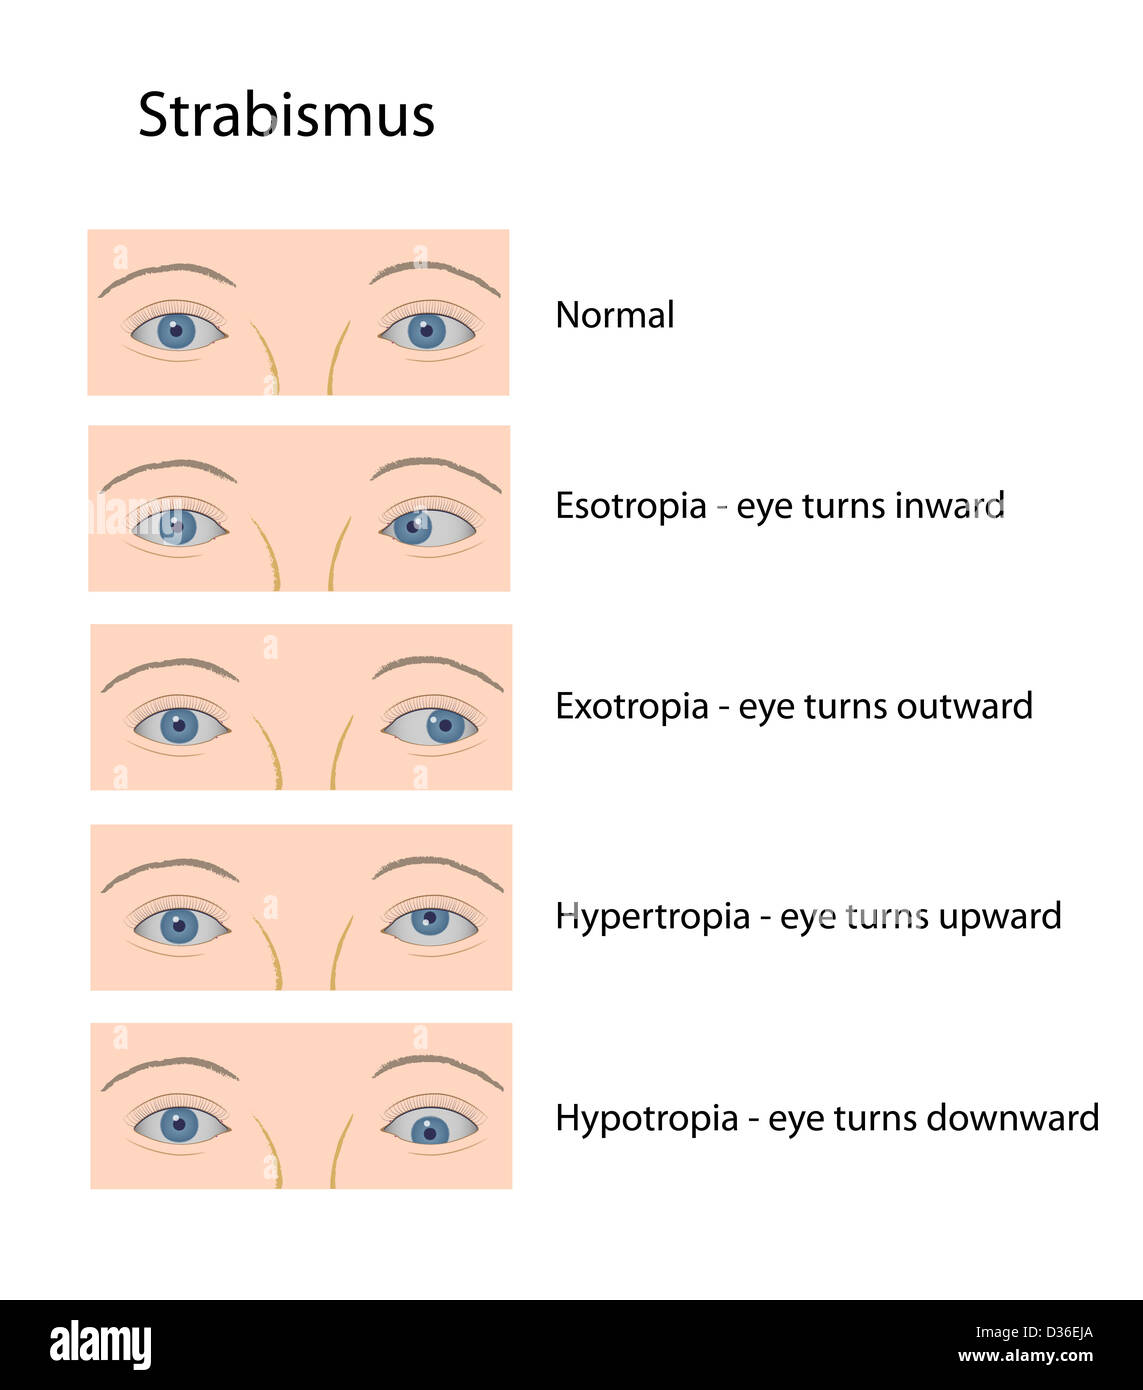 Strabismus Classification Stock Photo Royalty Free Image